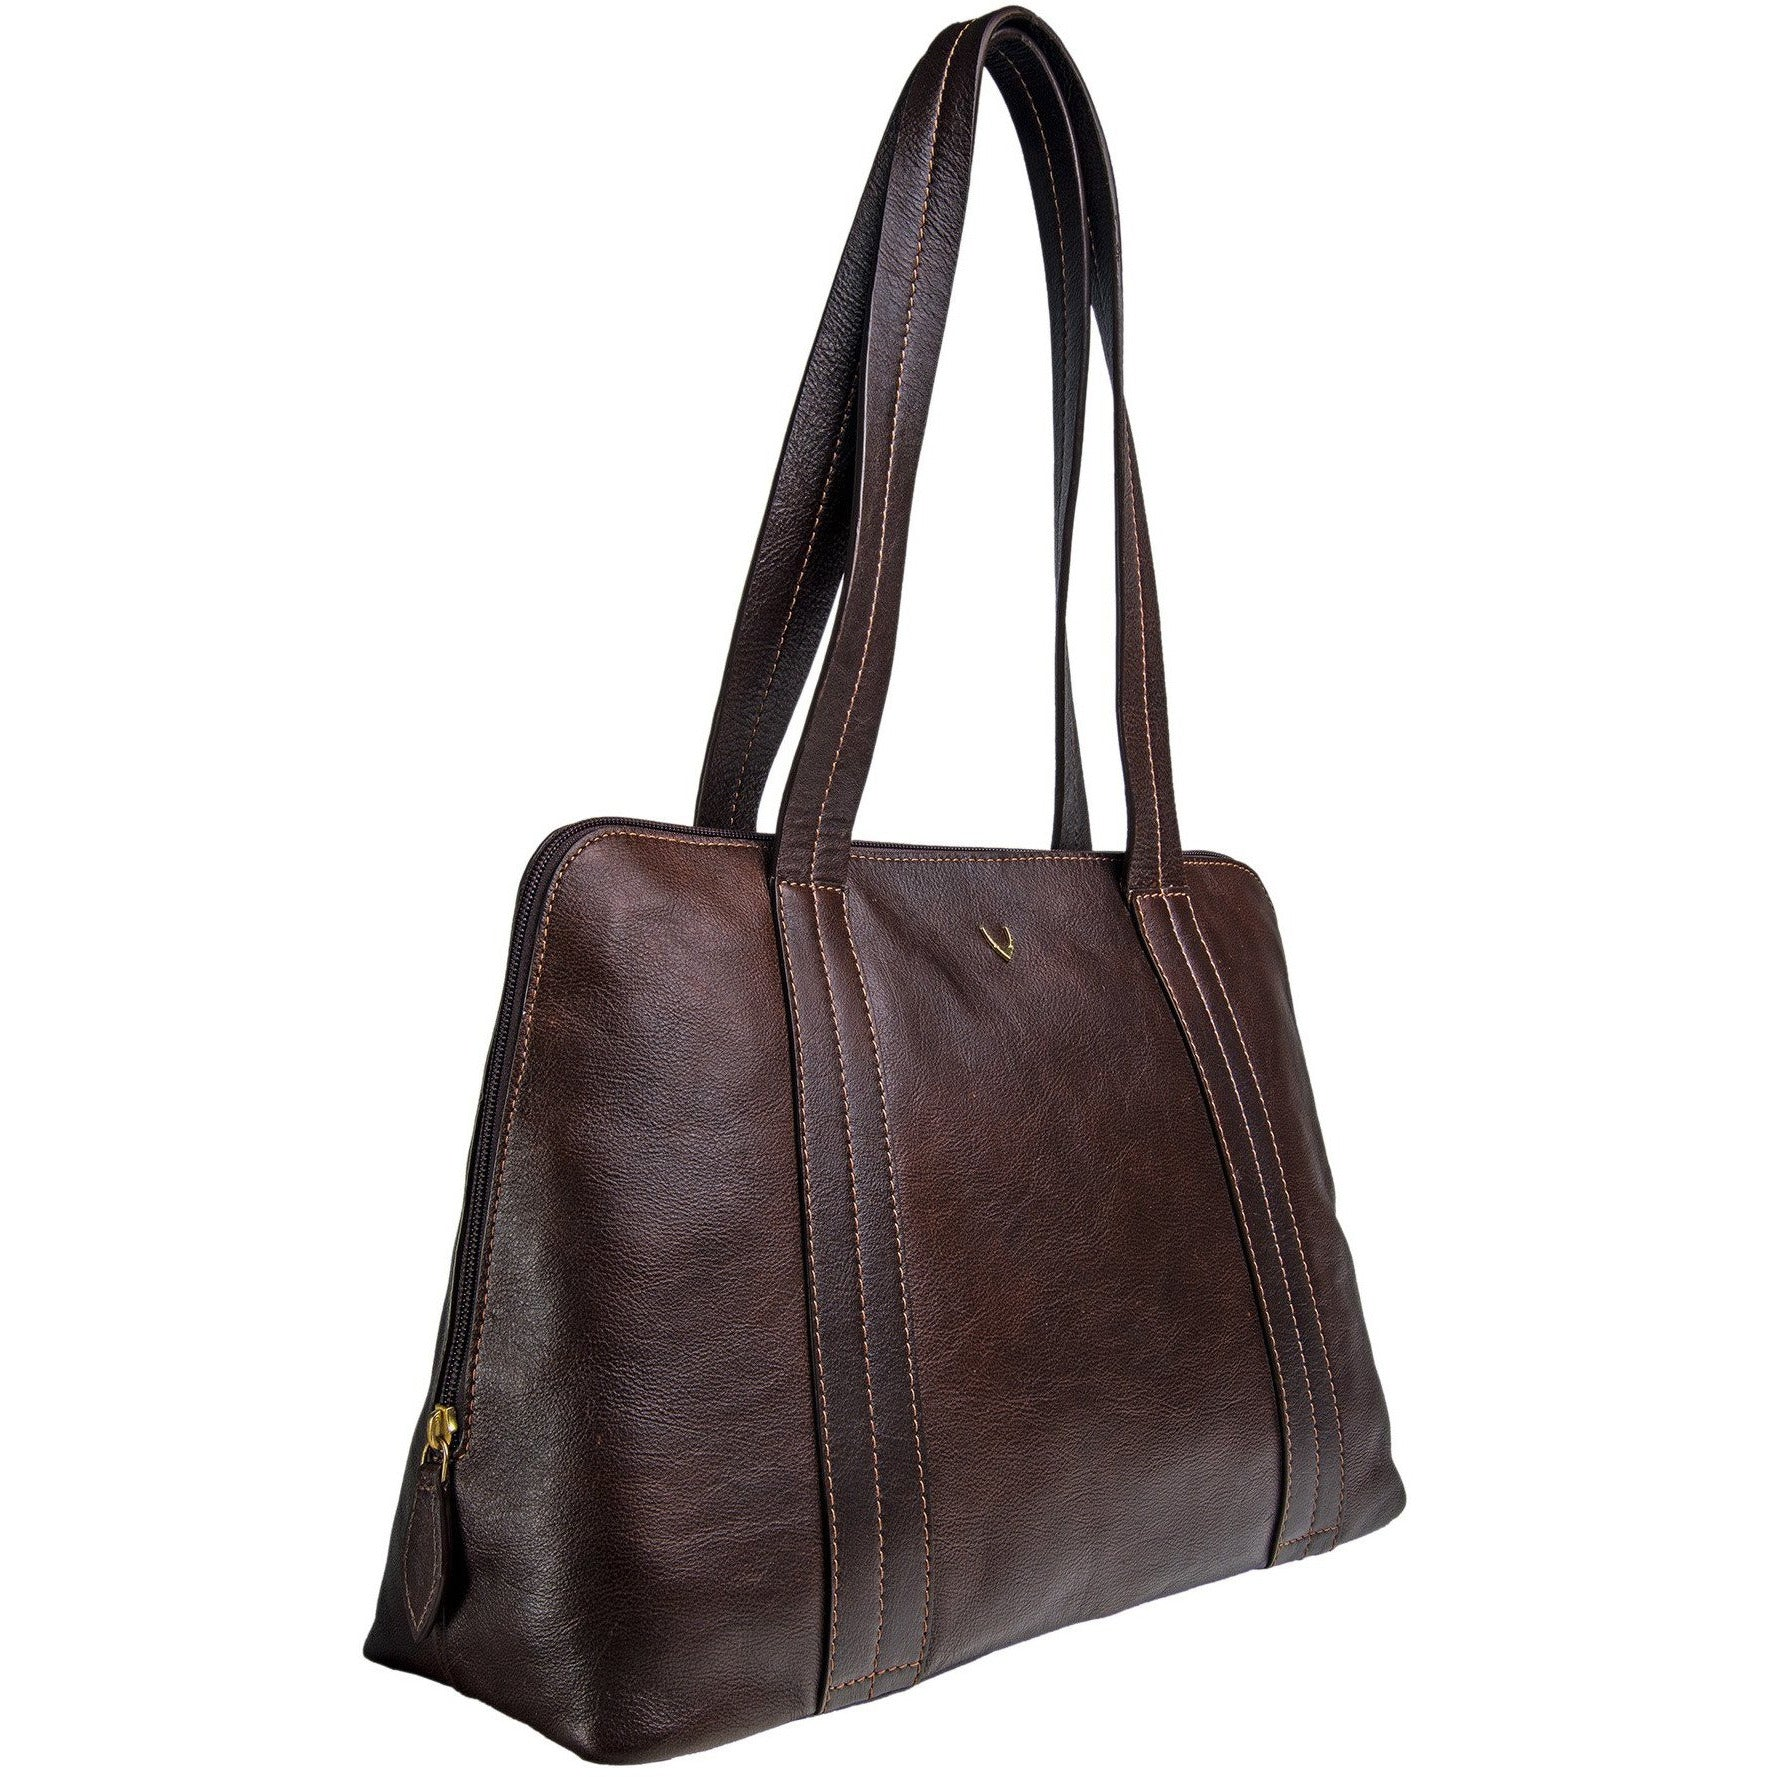 Cery Leather Multi-Compartment Tote - Black - Miraposa